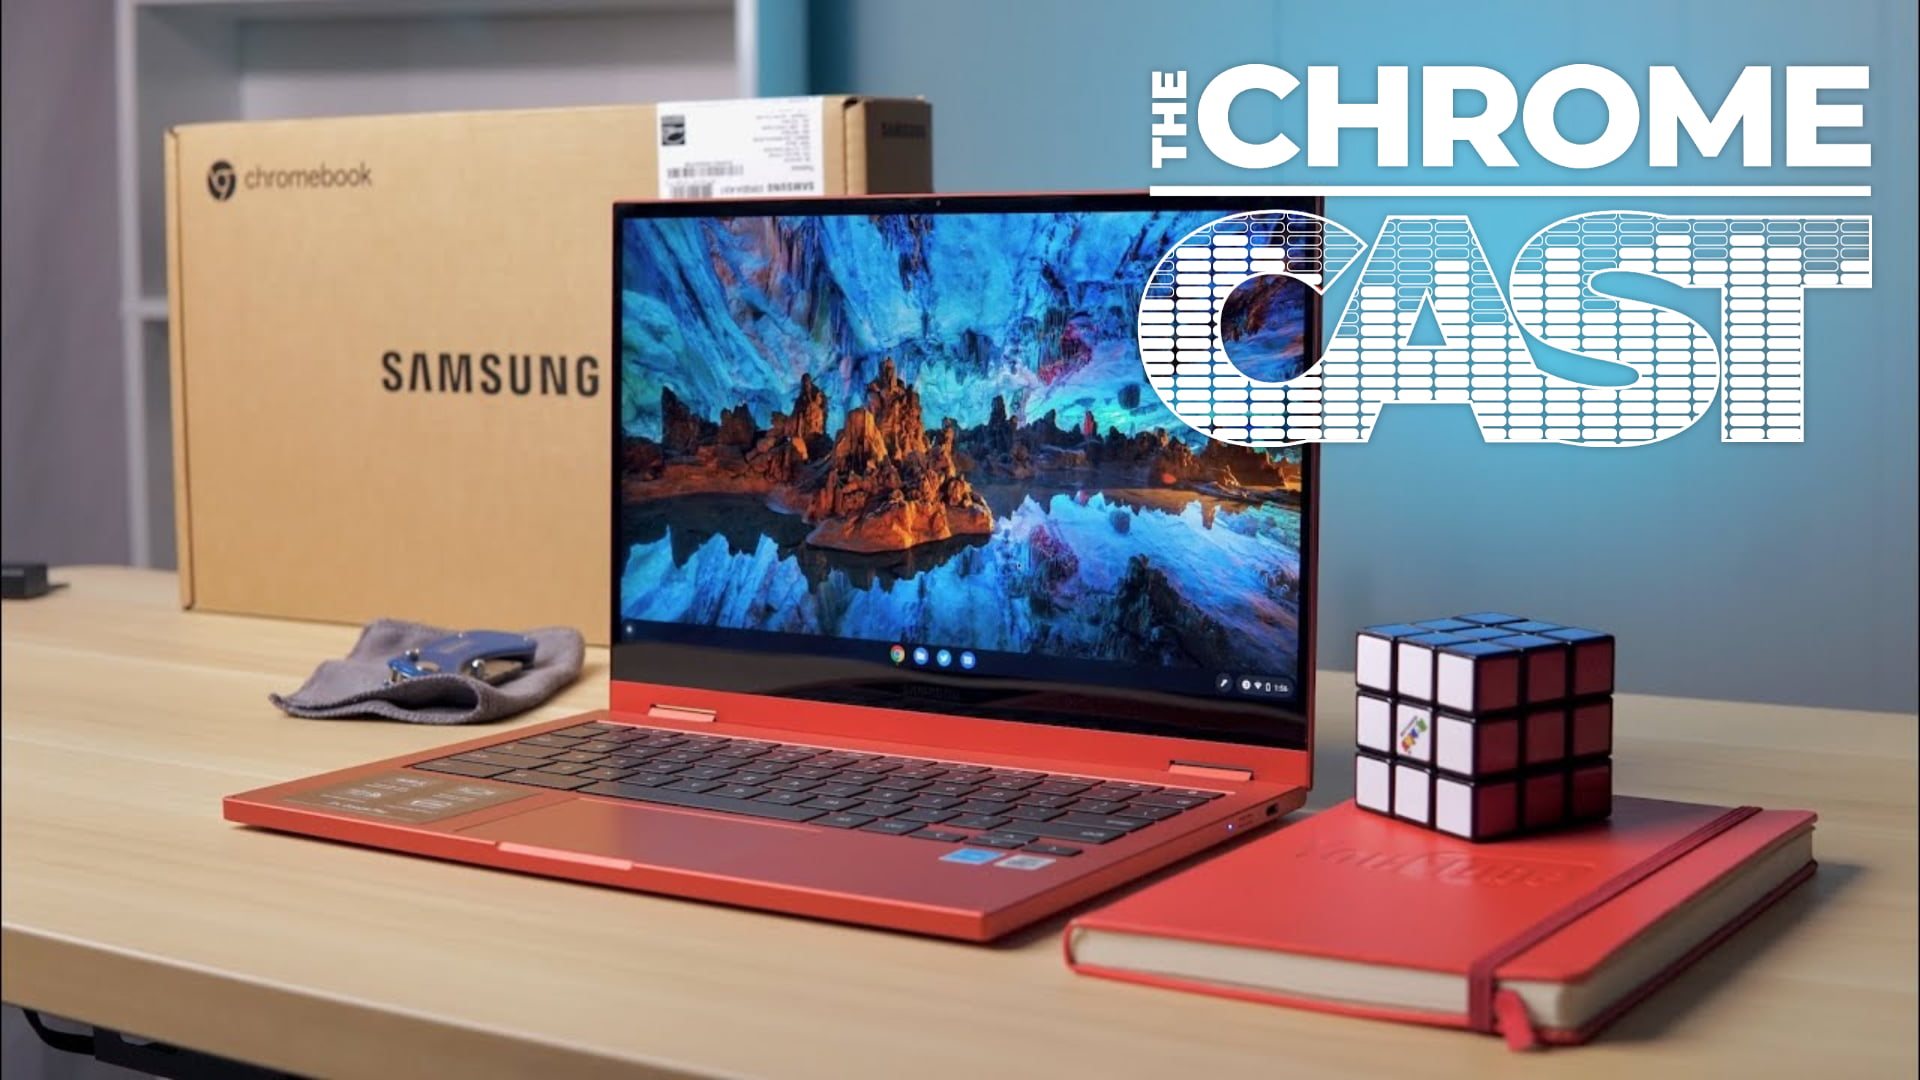 The Chrome Cast 102: Early Samsung Galaxy Chromebook 2 thoughts and 4-week Chrome updates